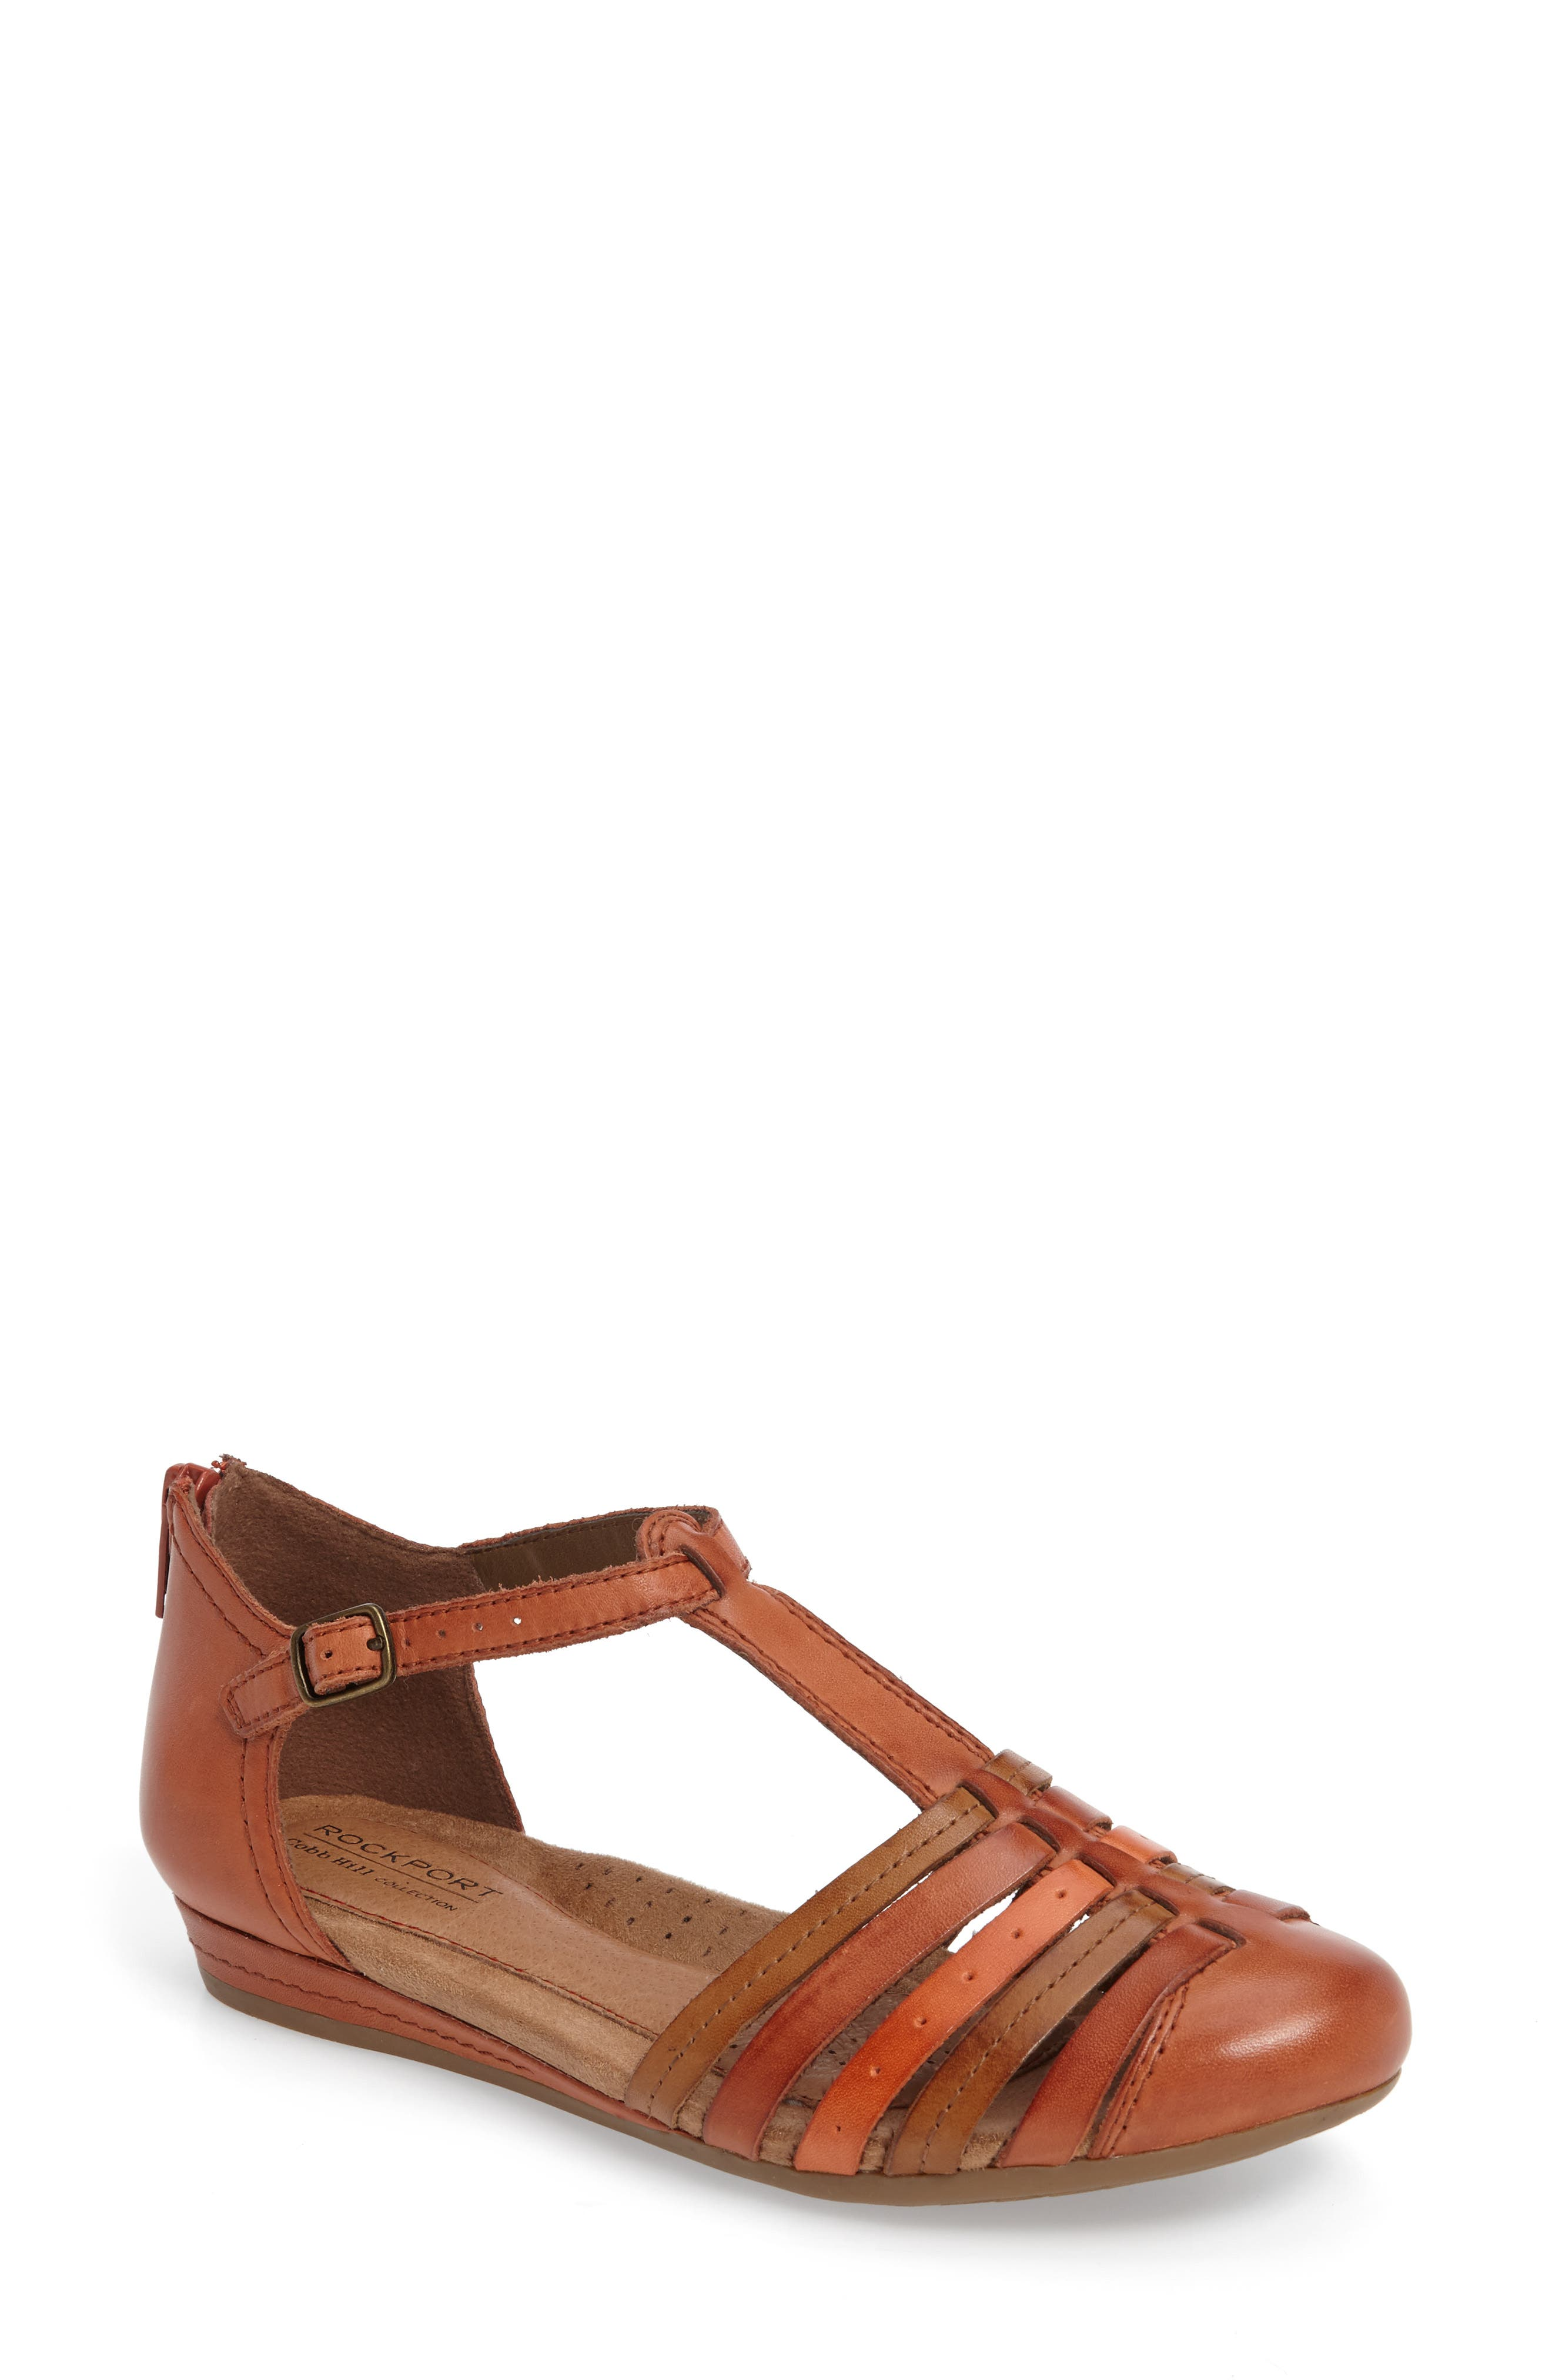 Galway T-Strap Sandal,                             Main thumbnail 2, color,